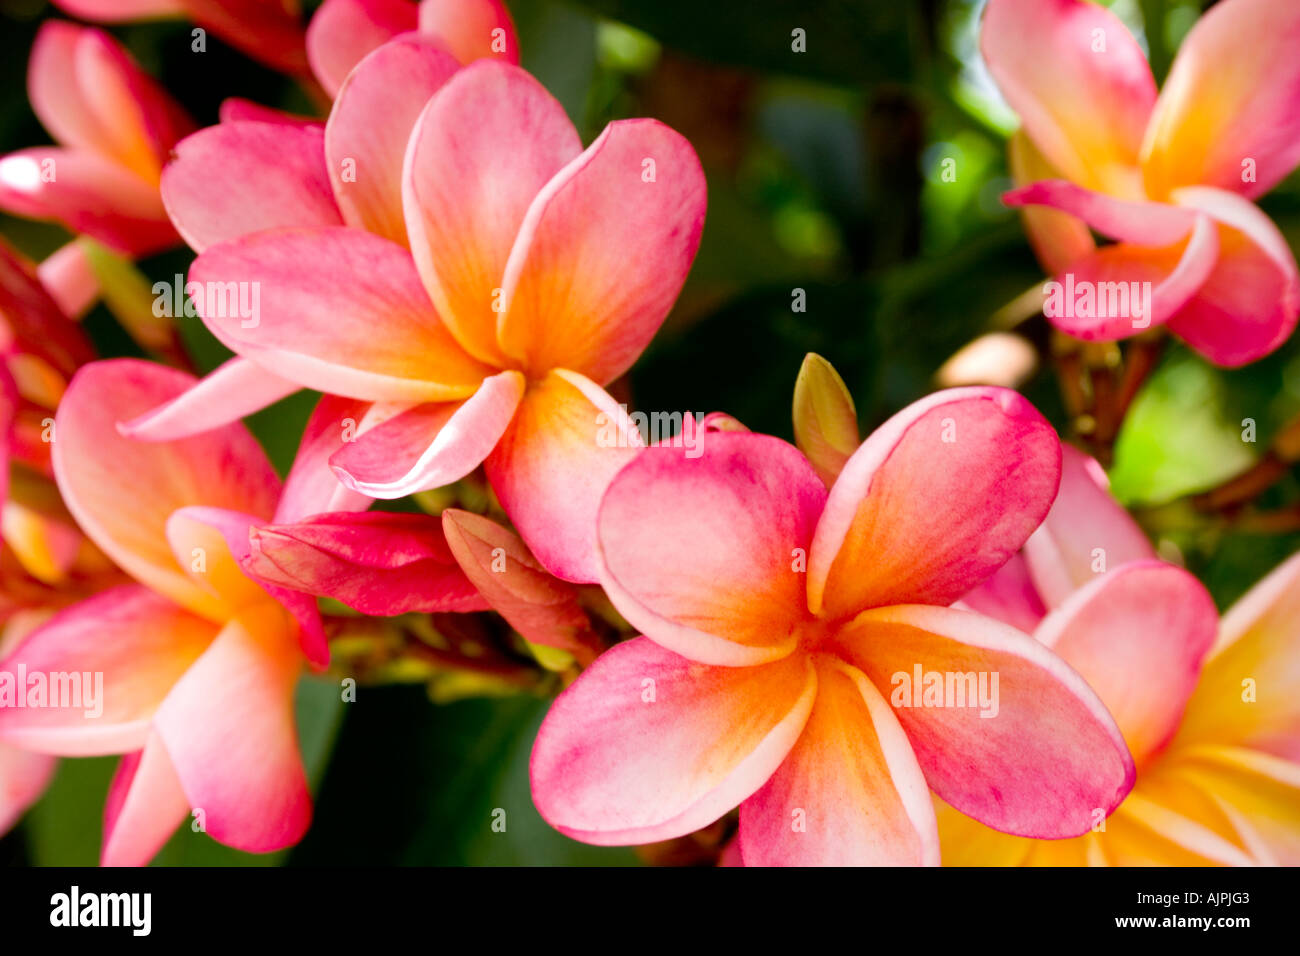 Pink And Orange Plumeria Flowers Stock Photos Pink And Orange